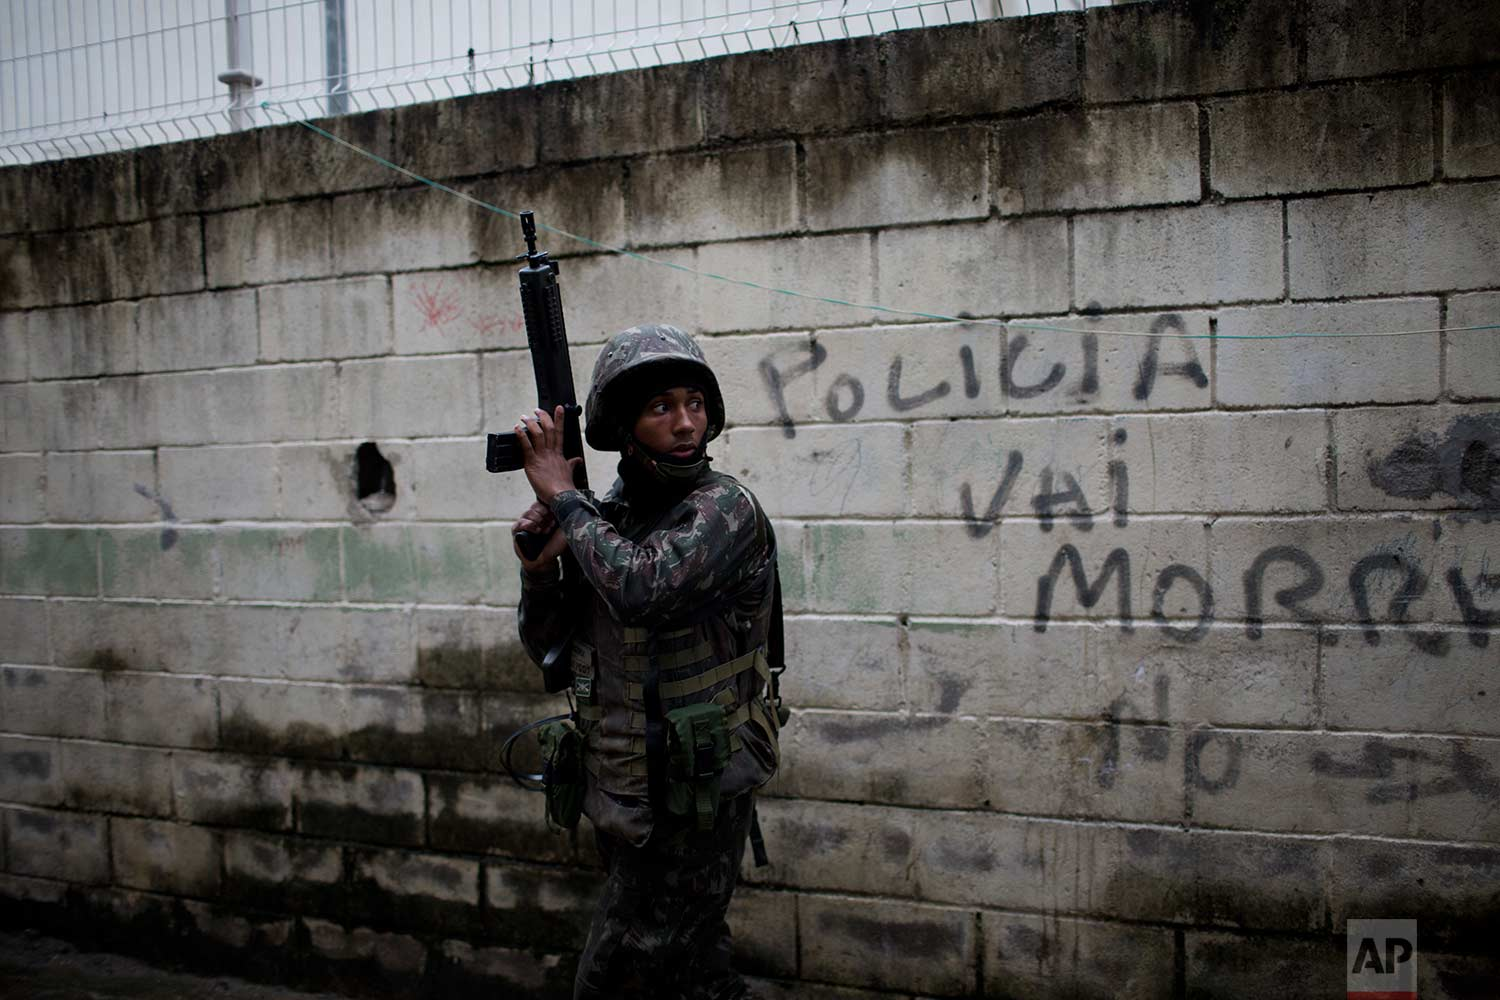 """A soldier takes position next to a wall spray-painted with the Portuguese message: """"Police will die"""" in the Jacarezinho slum during a security operation, in Rio de Janeiro, Brazil, on Monday, Aug. 21, 2017. Thousands of soldiers and police are occupying a series of slum communities in northern part of the city as part of efforts to combat a spike in violence. (AP Photo/Silvia Izquierdo)"""